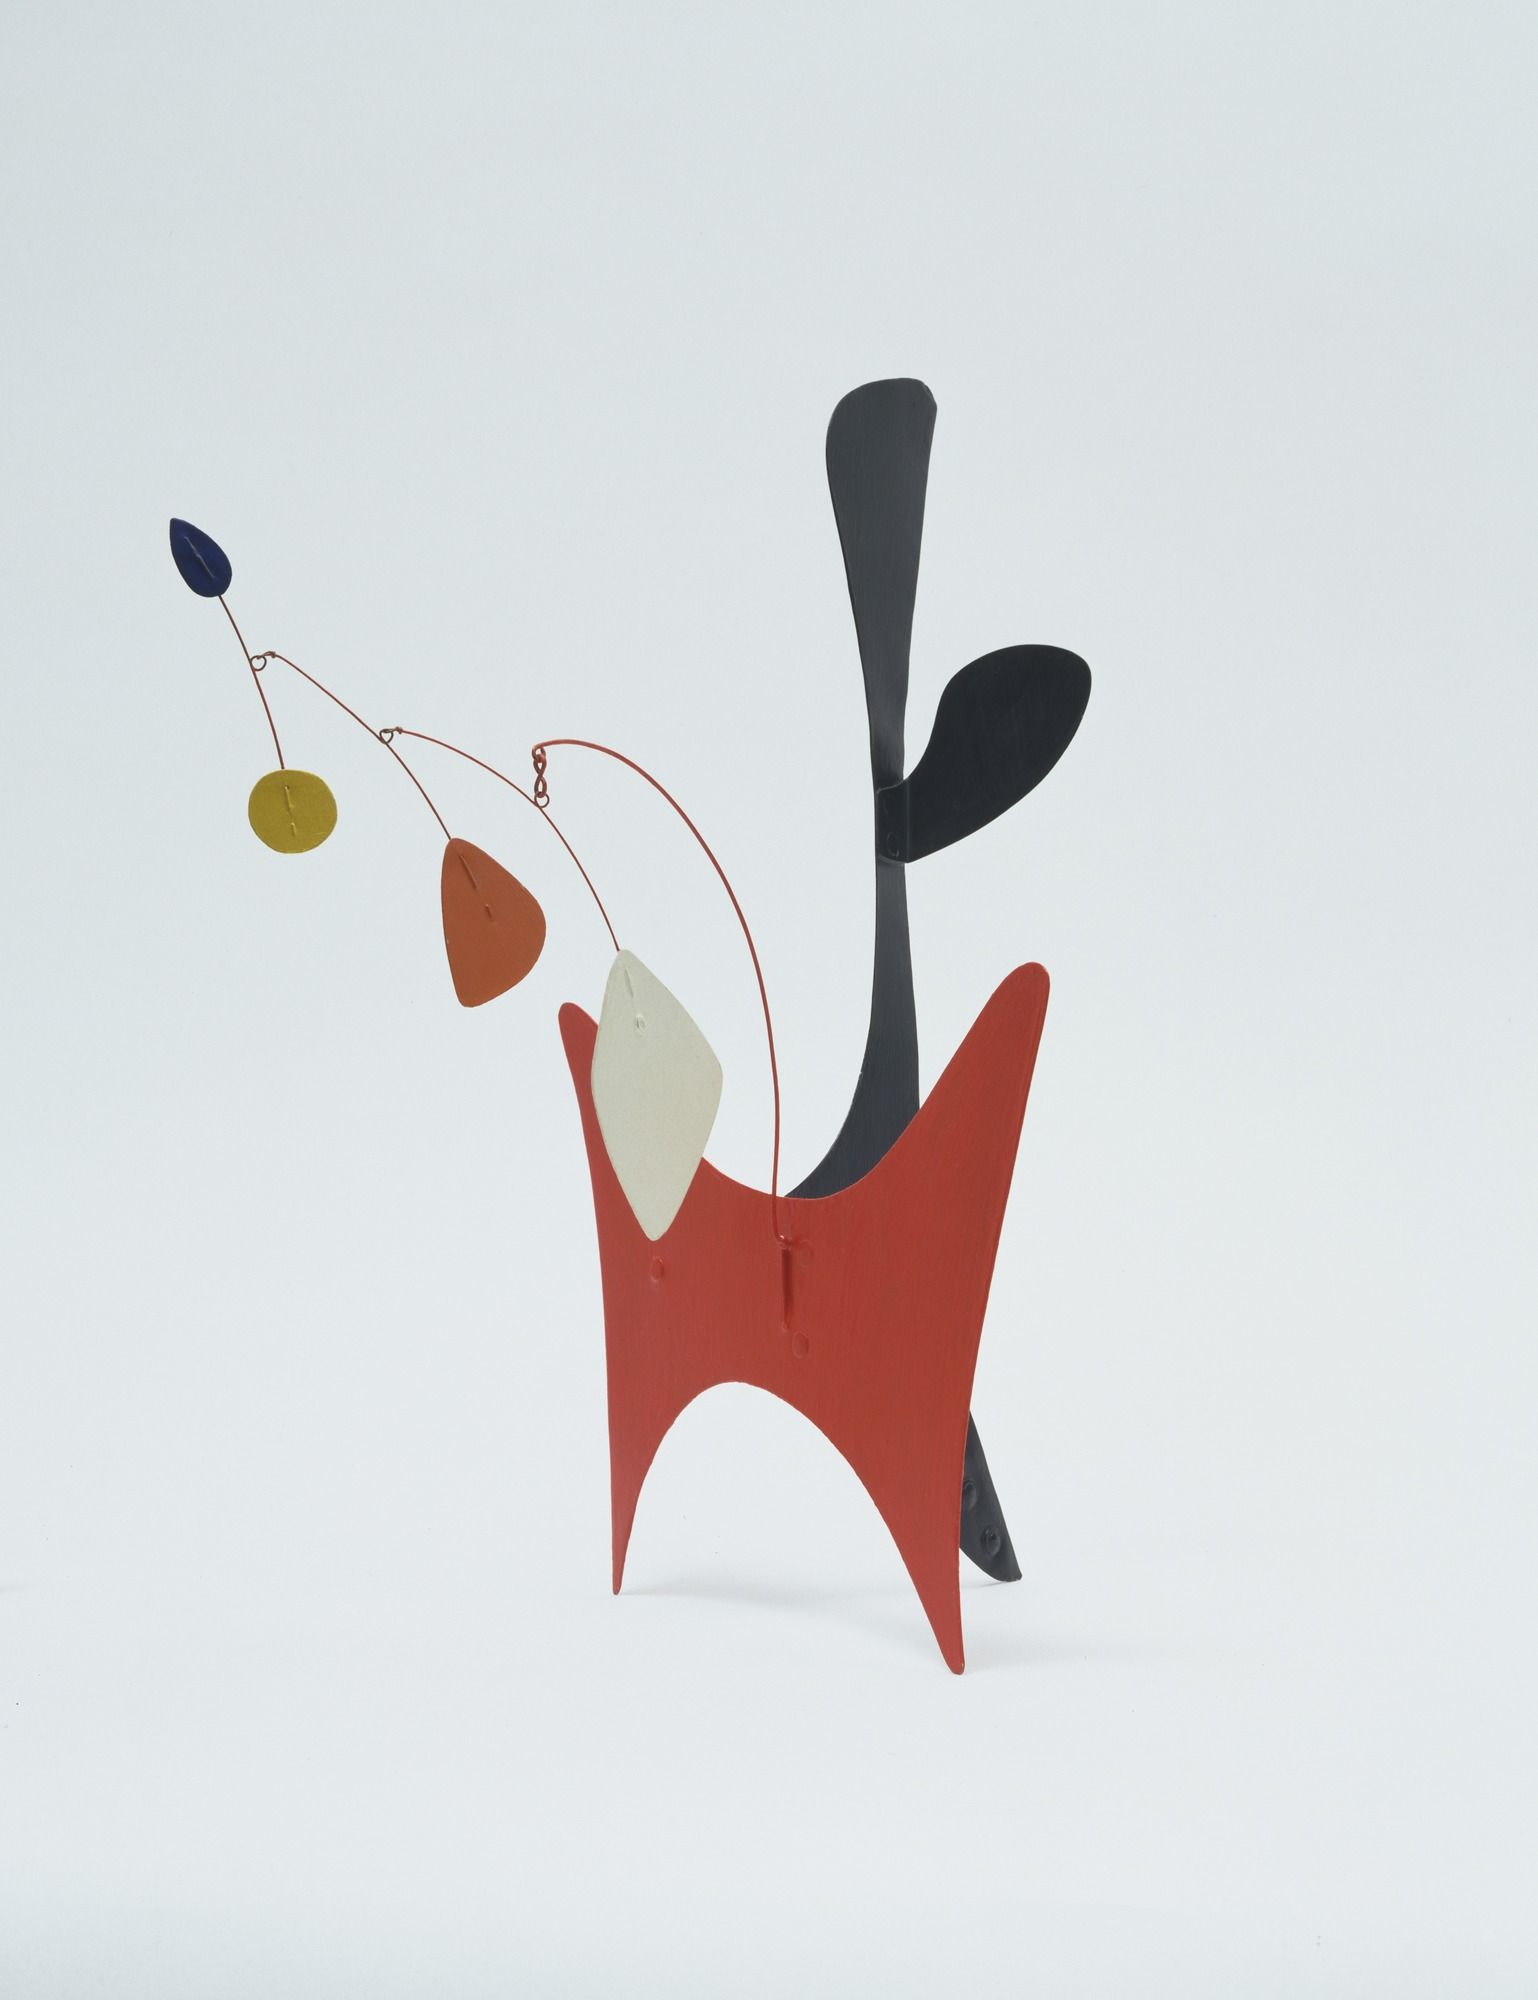 alexander calder untitled 1939 art pinterest skulpturen windspiele und mobiles. Black Bedroom Furniture Sets. Home Design Ideas